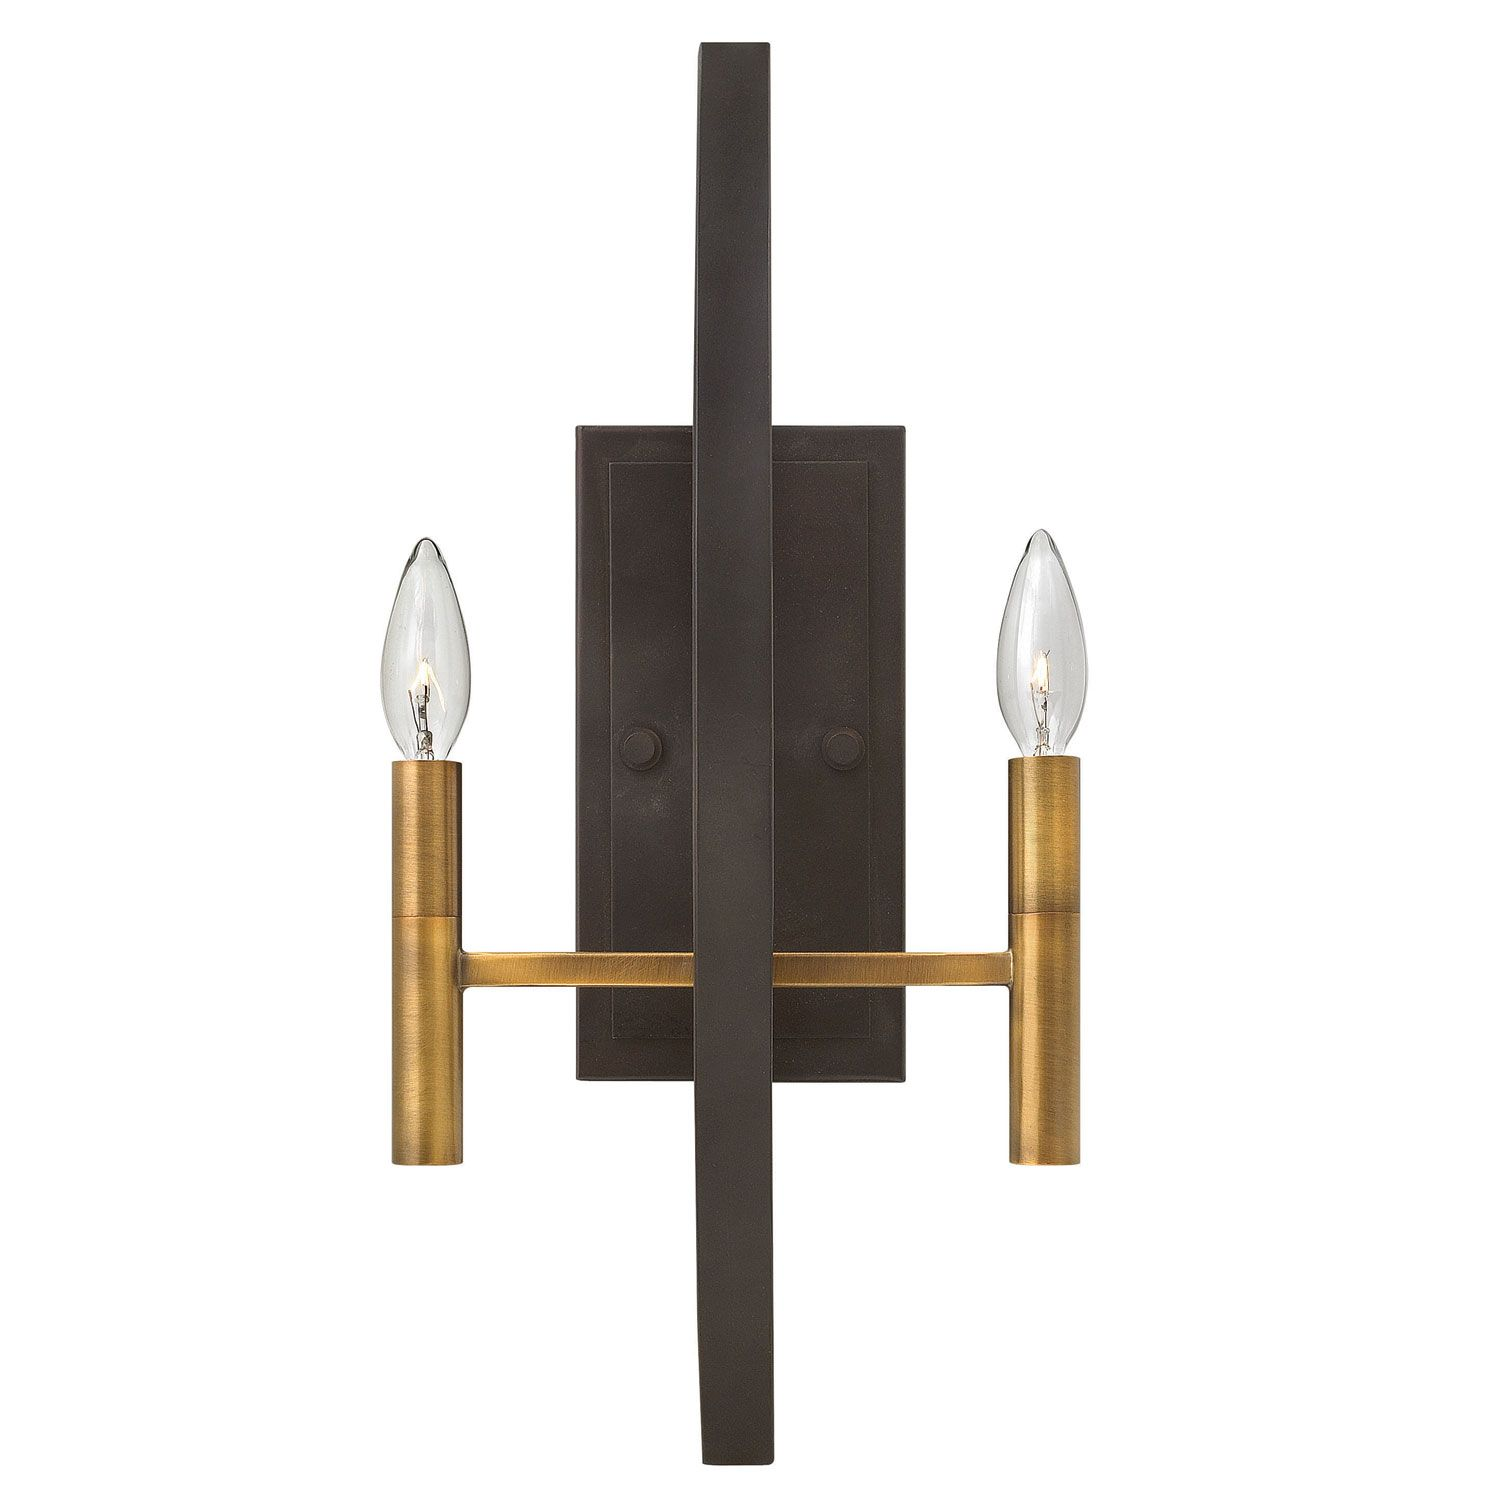 Hinkley Euclid Spanish Bronze TwoLight Wall Sconce Light Walls - Two light bathroom sconce